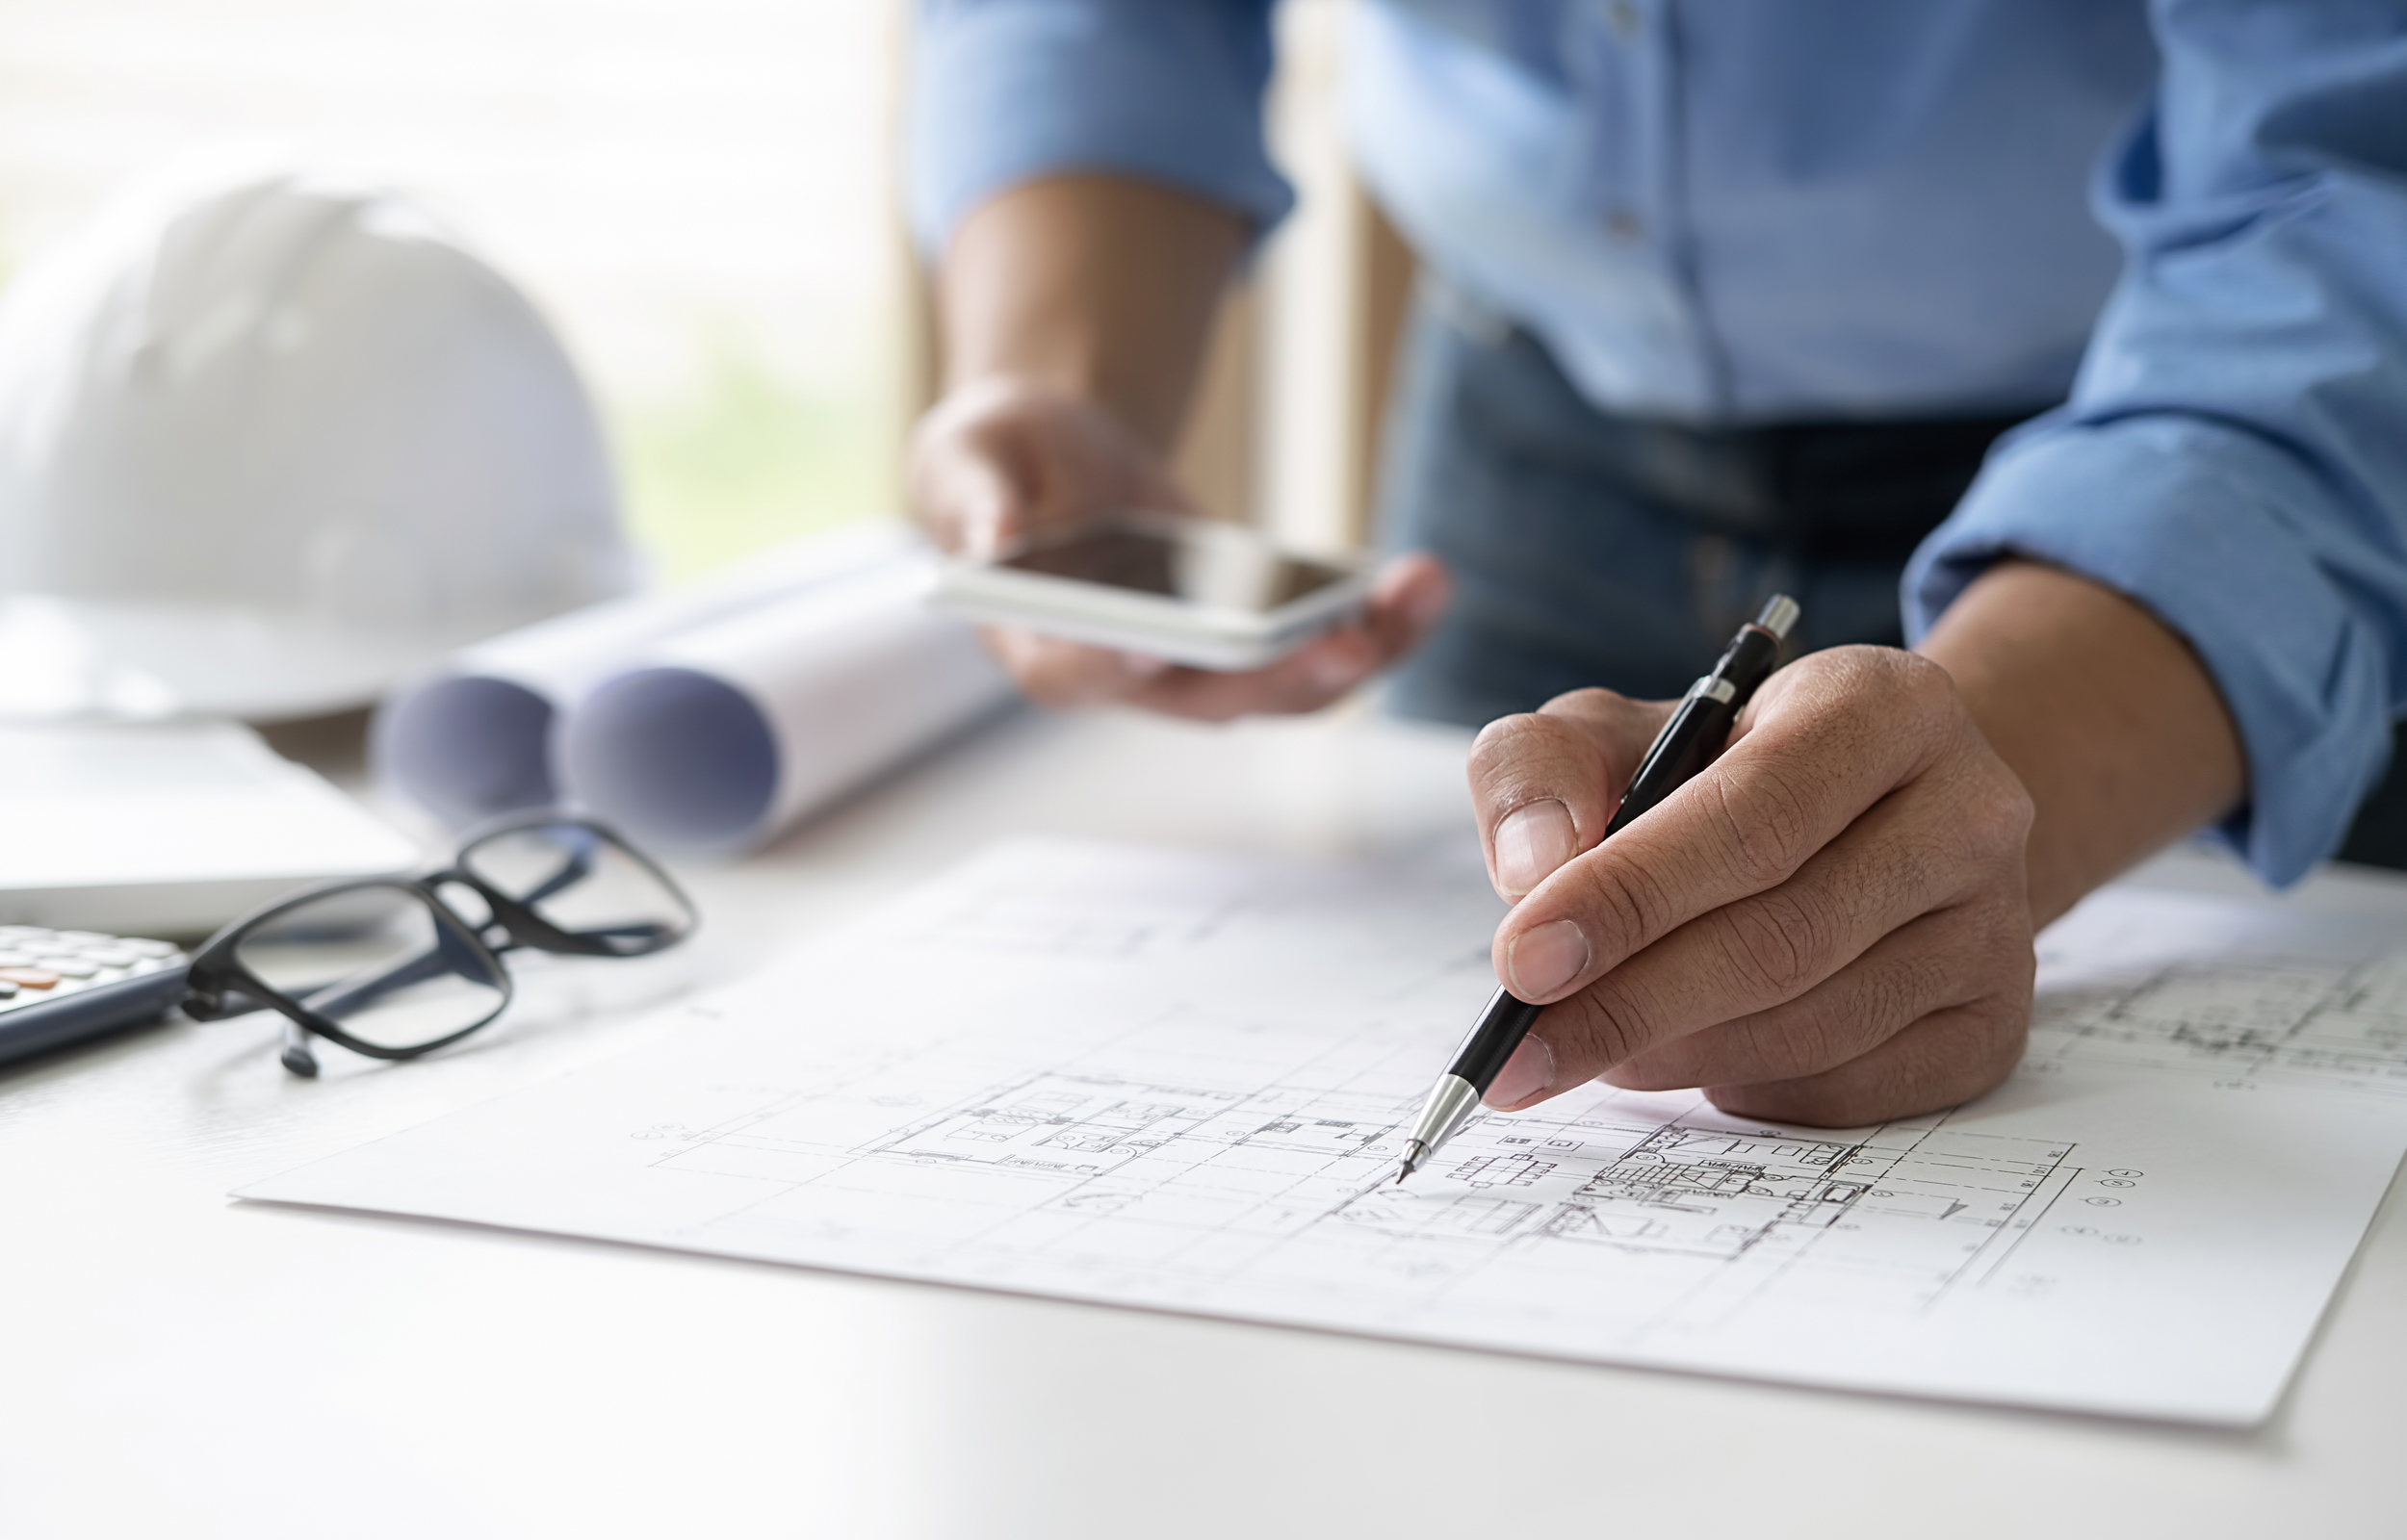 Architect or Engineer working in office with engineering tools,